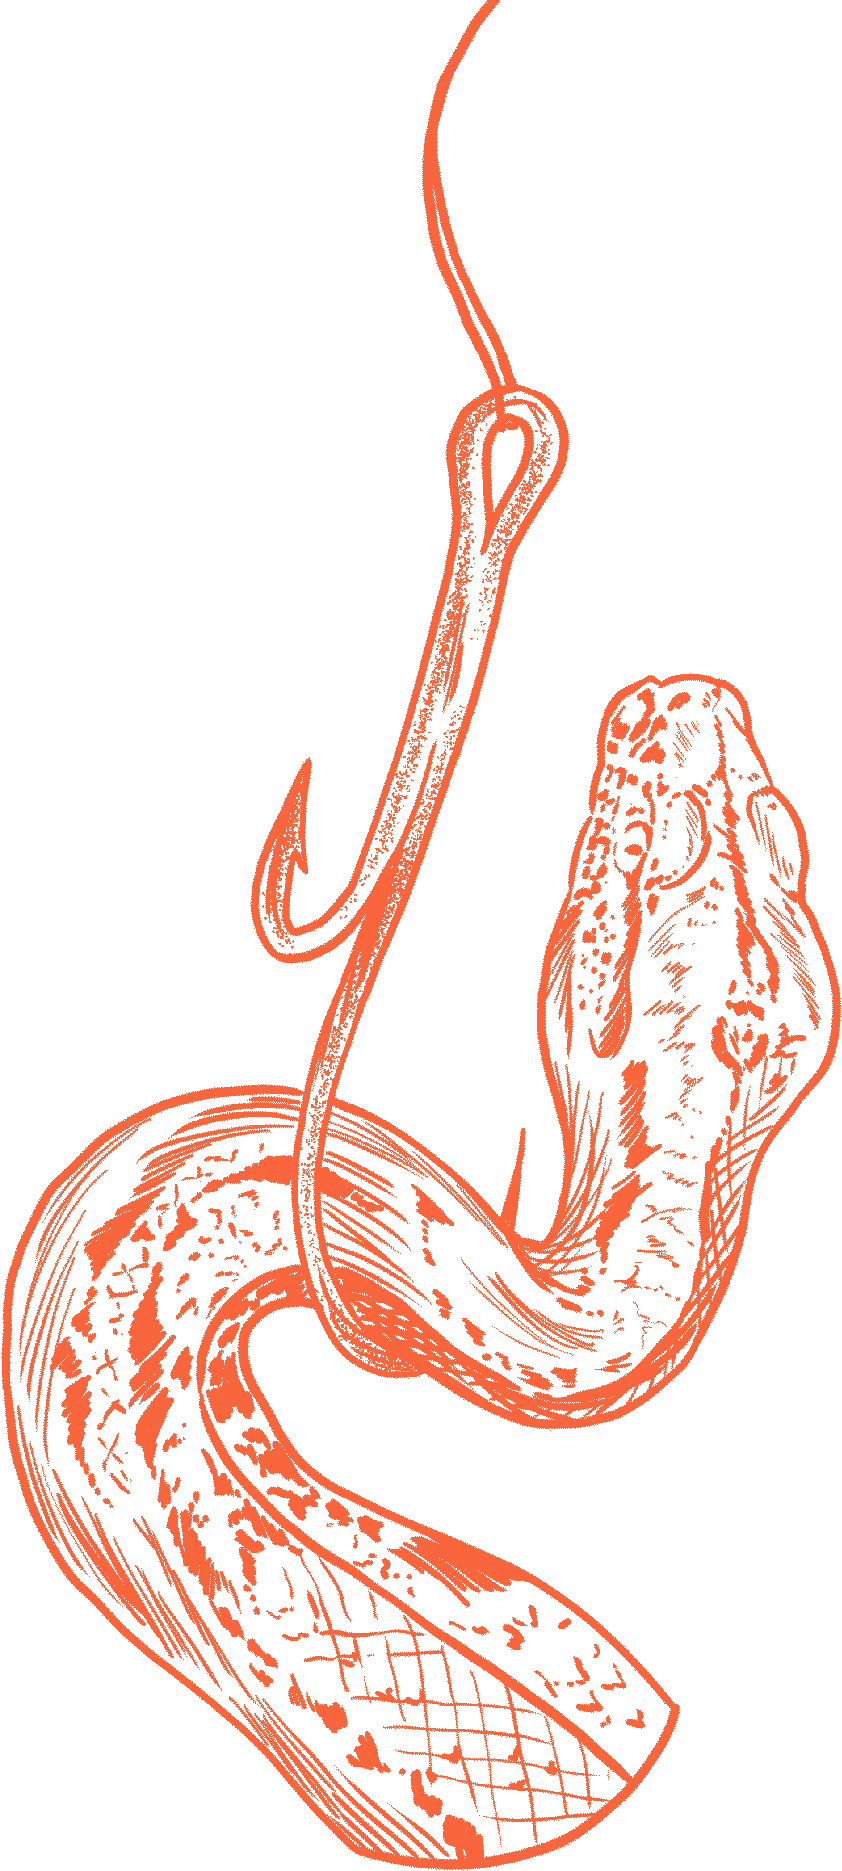 Florian Hirnhack Drawing of Snake on a Hook